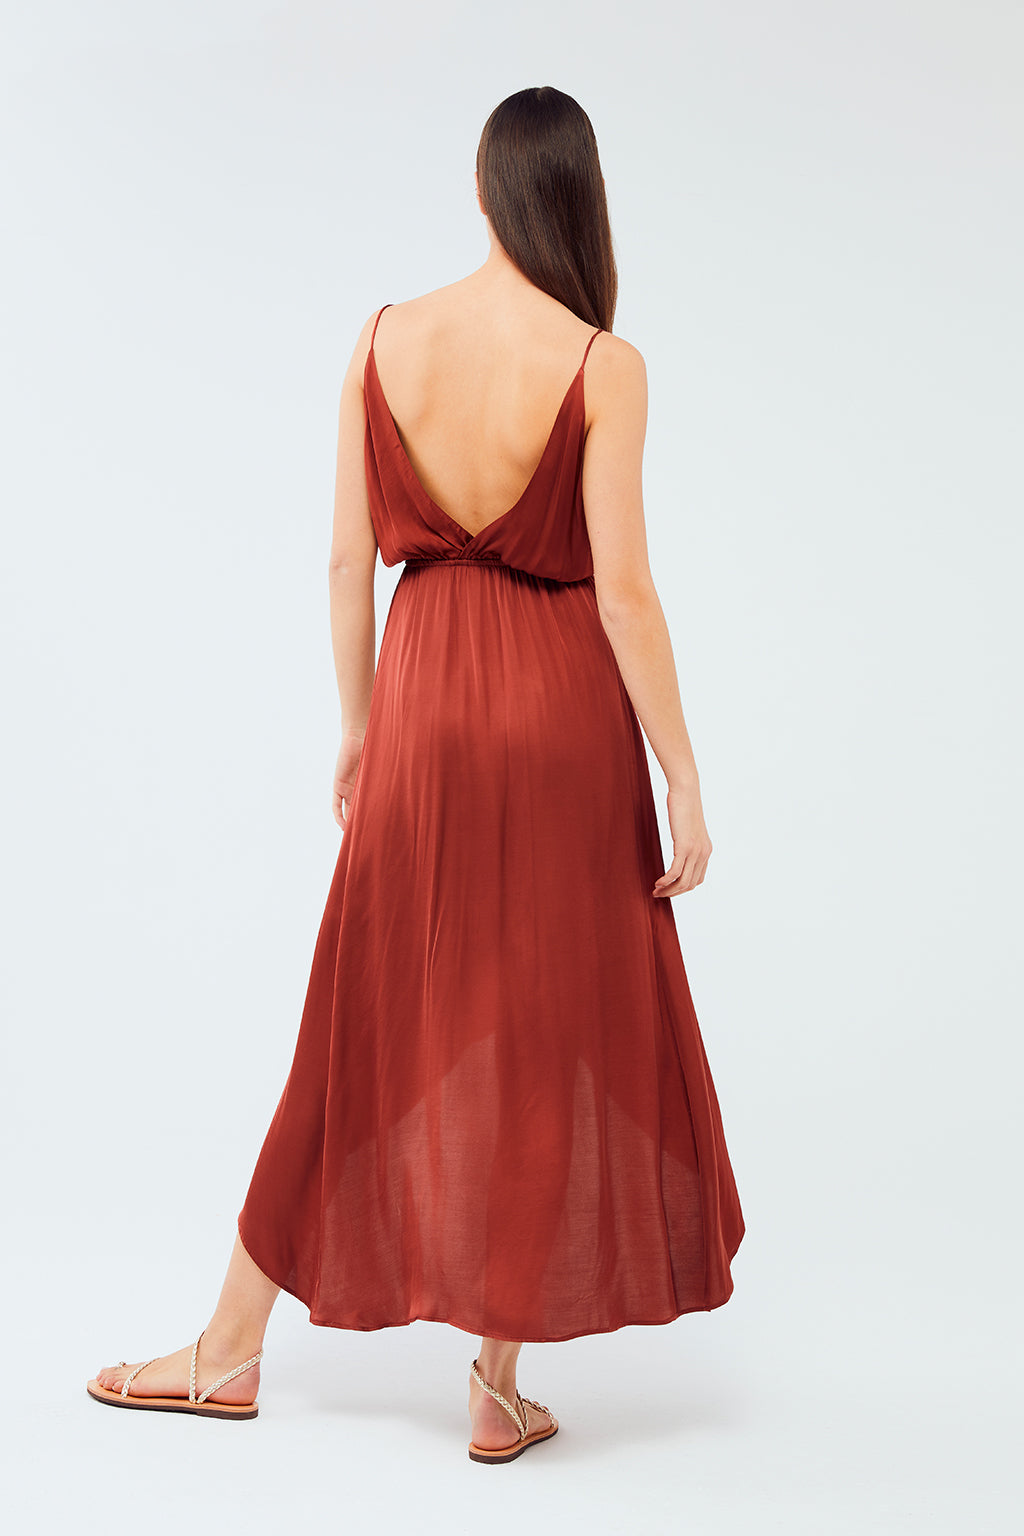 Wildwood - Orchid Dress | Wine